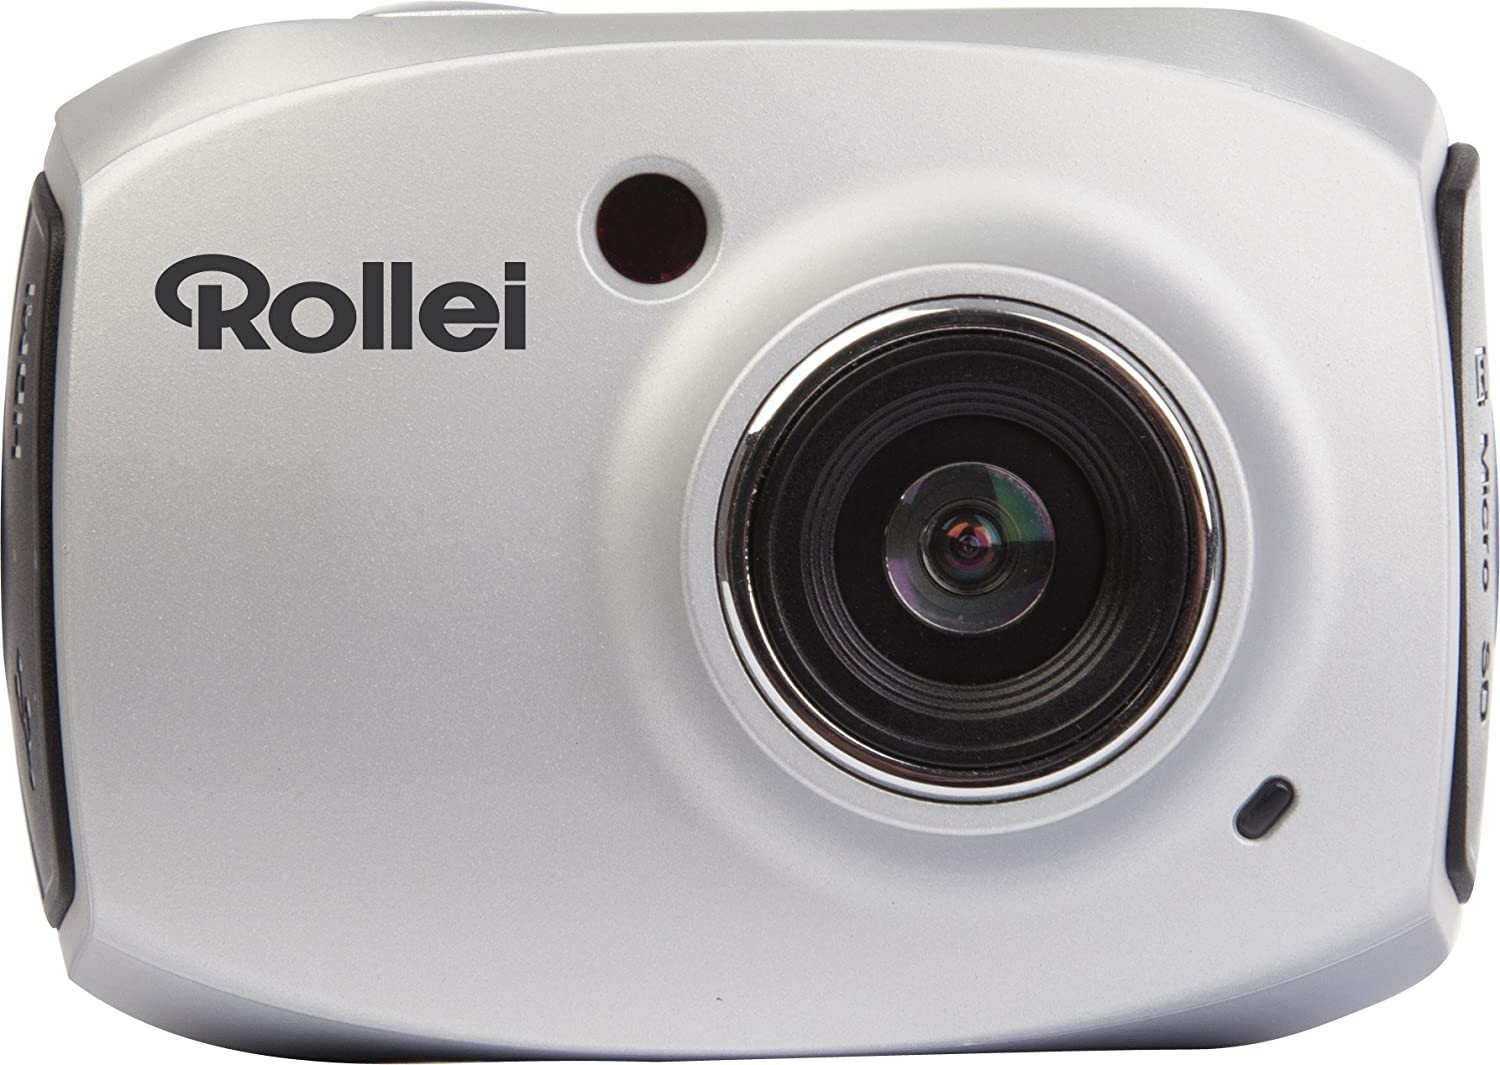 【有名人芸能人】 Rollei Racy 40241 Appareil Photo Appareil Full Full HD Ecran tactile cm) LCD 2,4